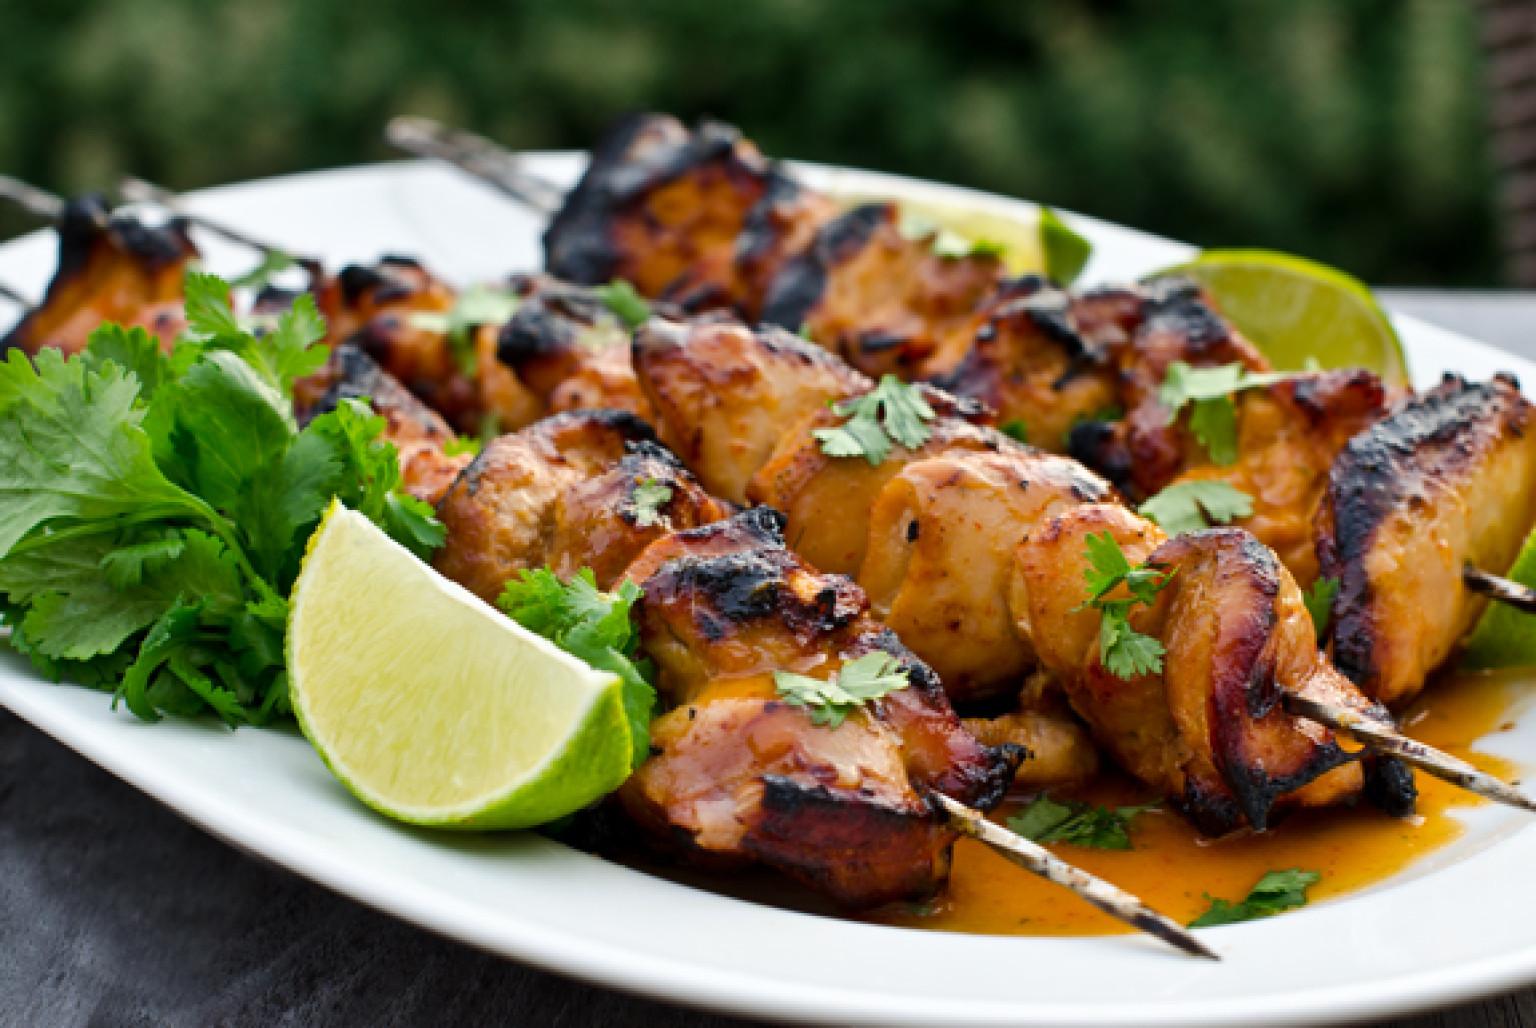 Lemon Grass and Turmeric Chicken Skewers